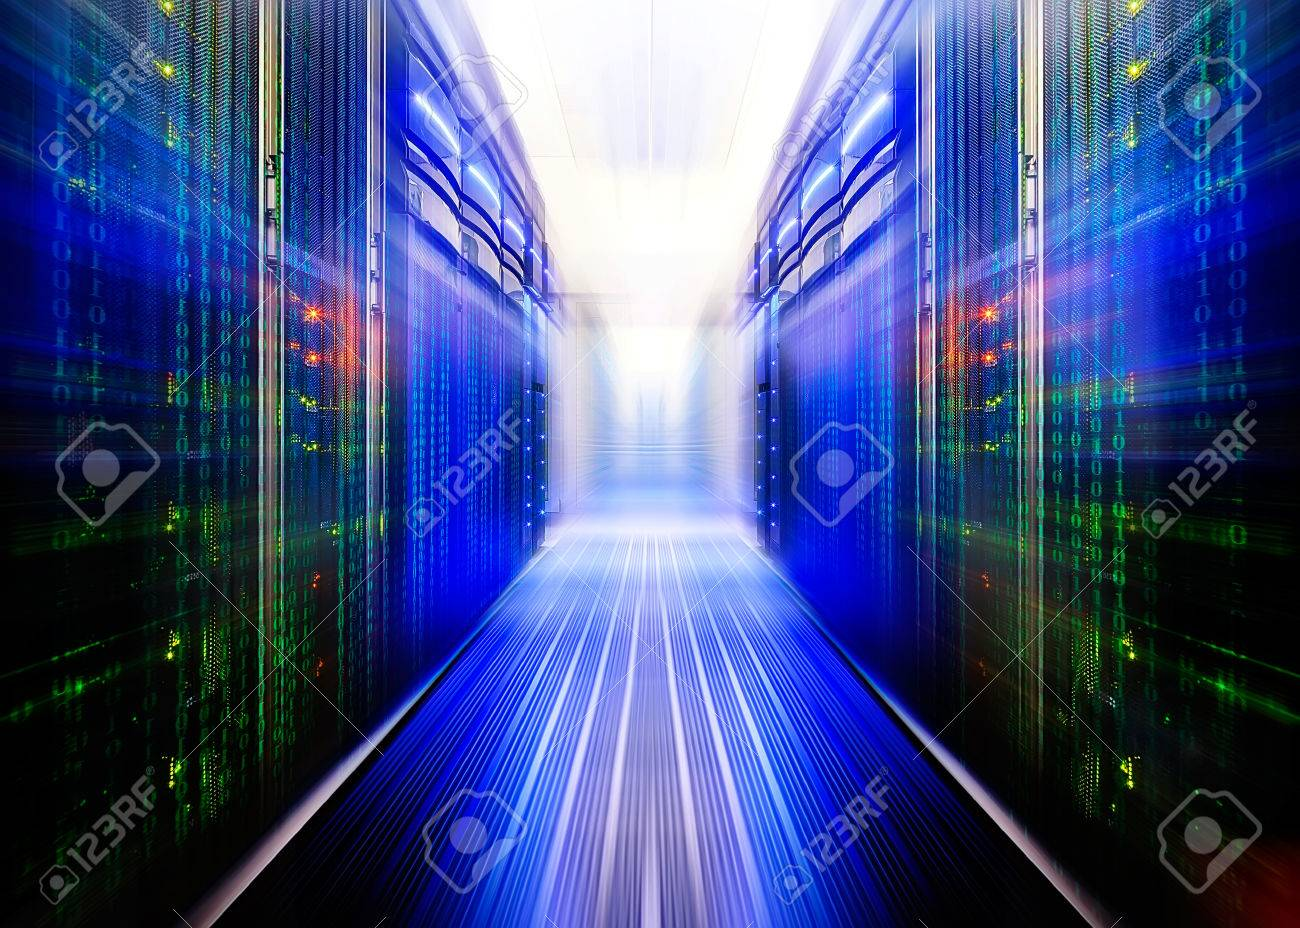 symmetrical data center room with futuristic beams and rows equipment - 57735268